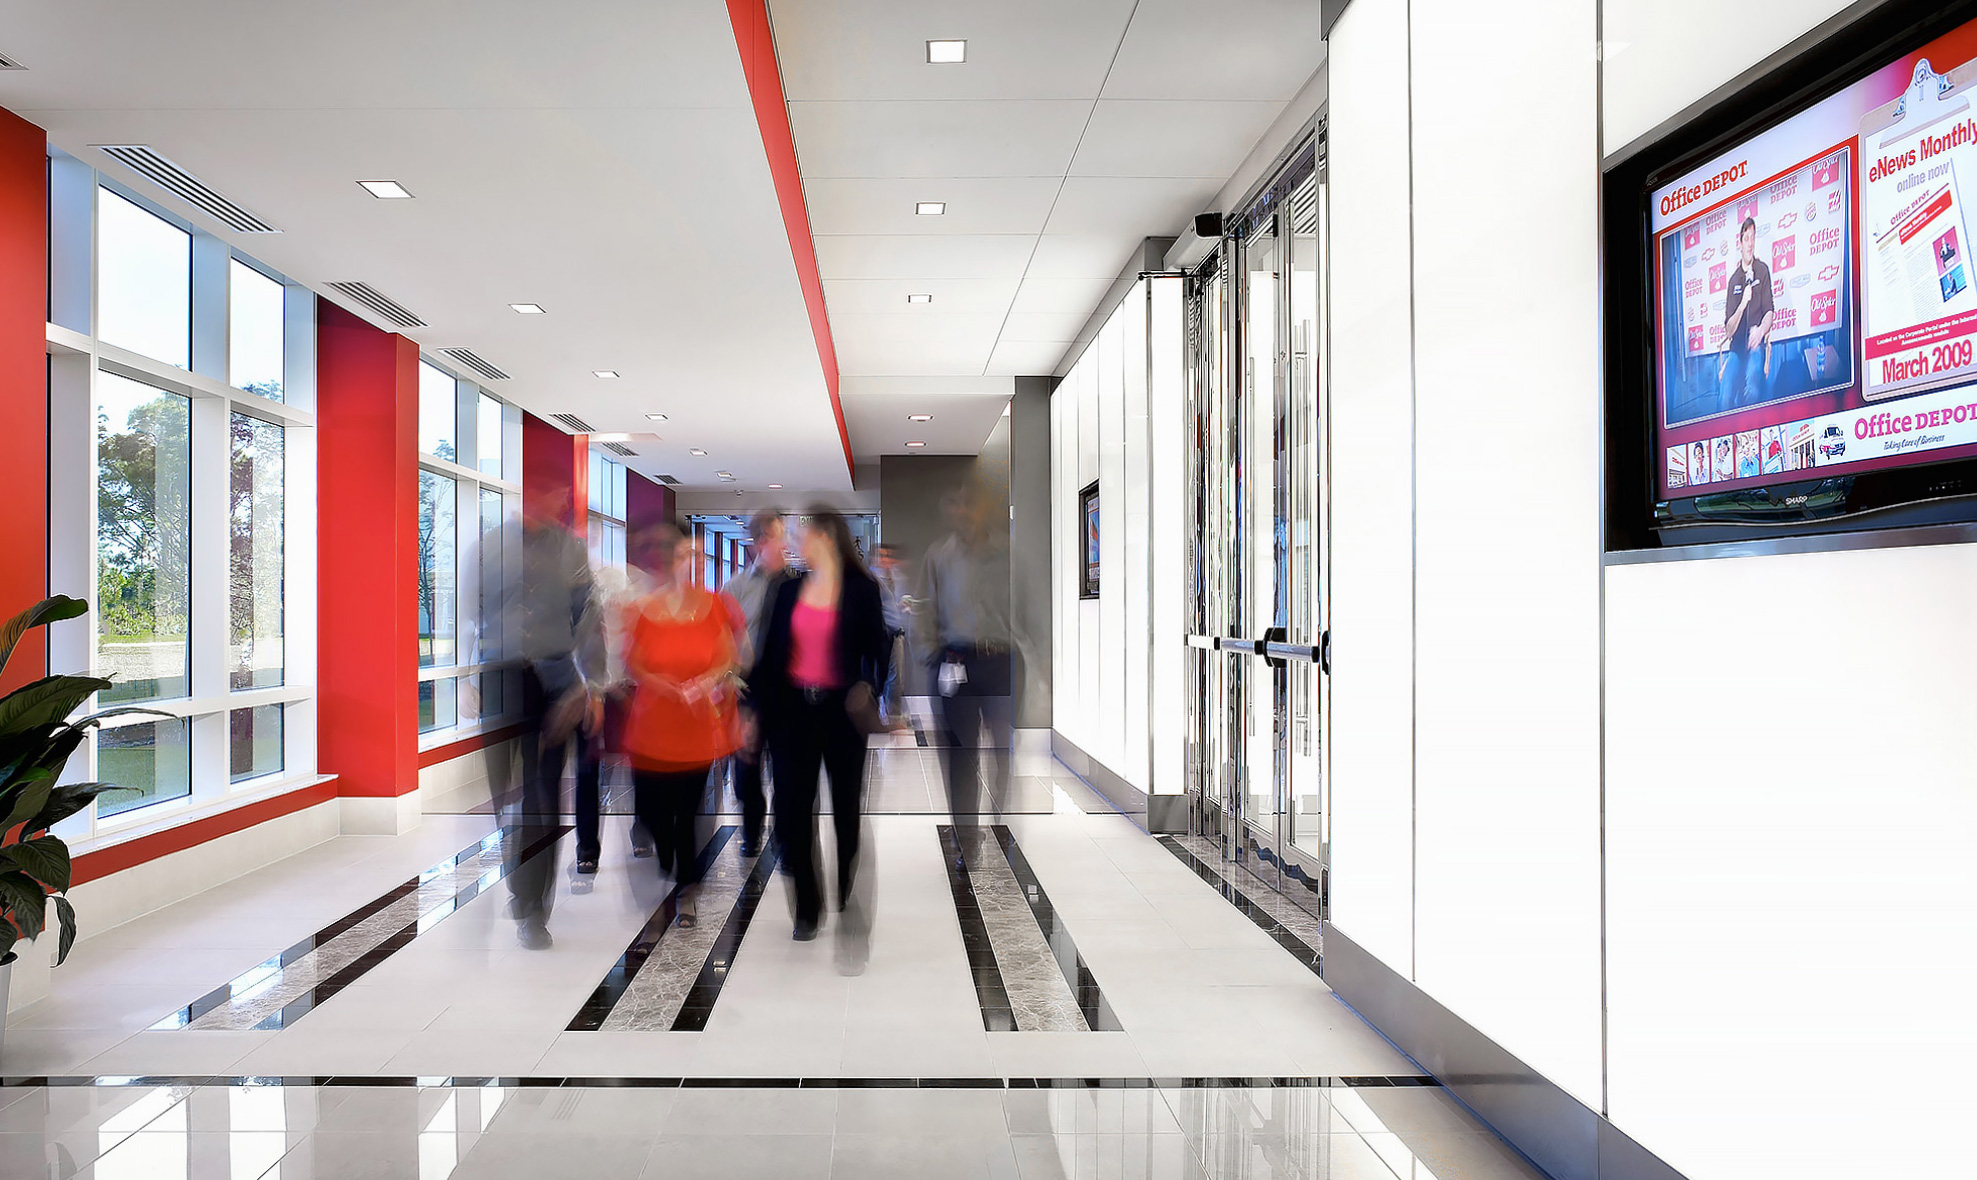 Commercial-Interior-Architecture-Photography-Office-Depot